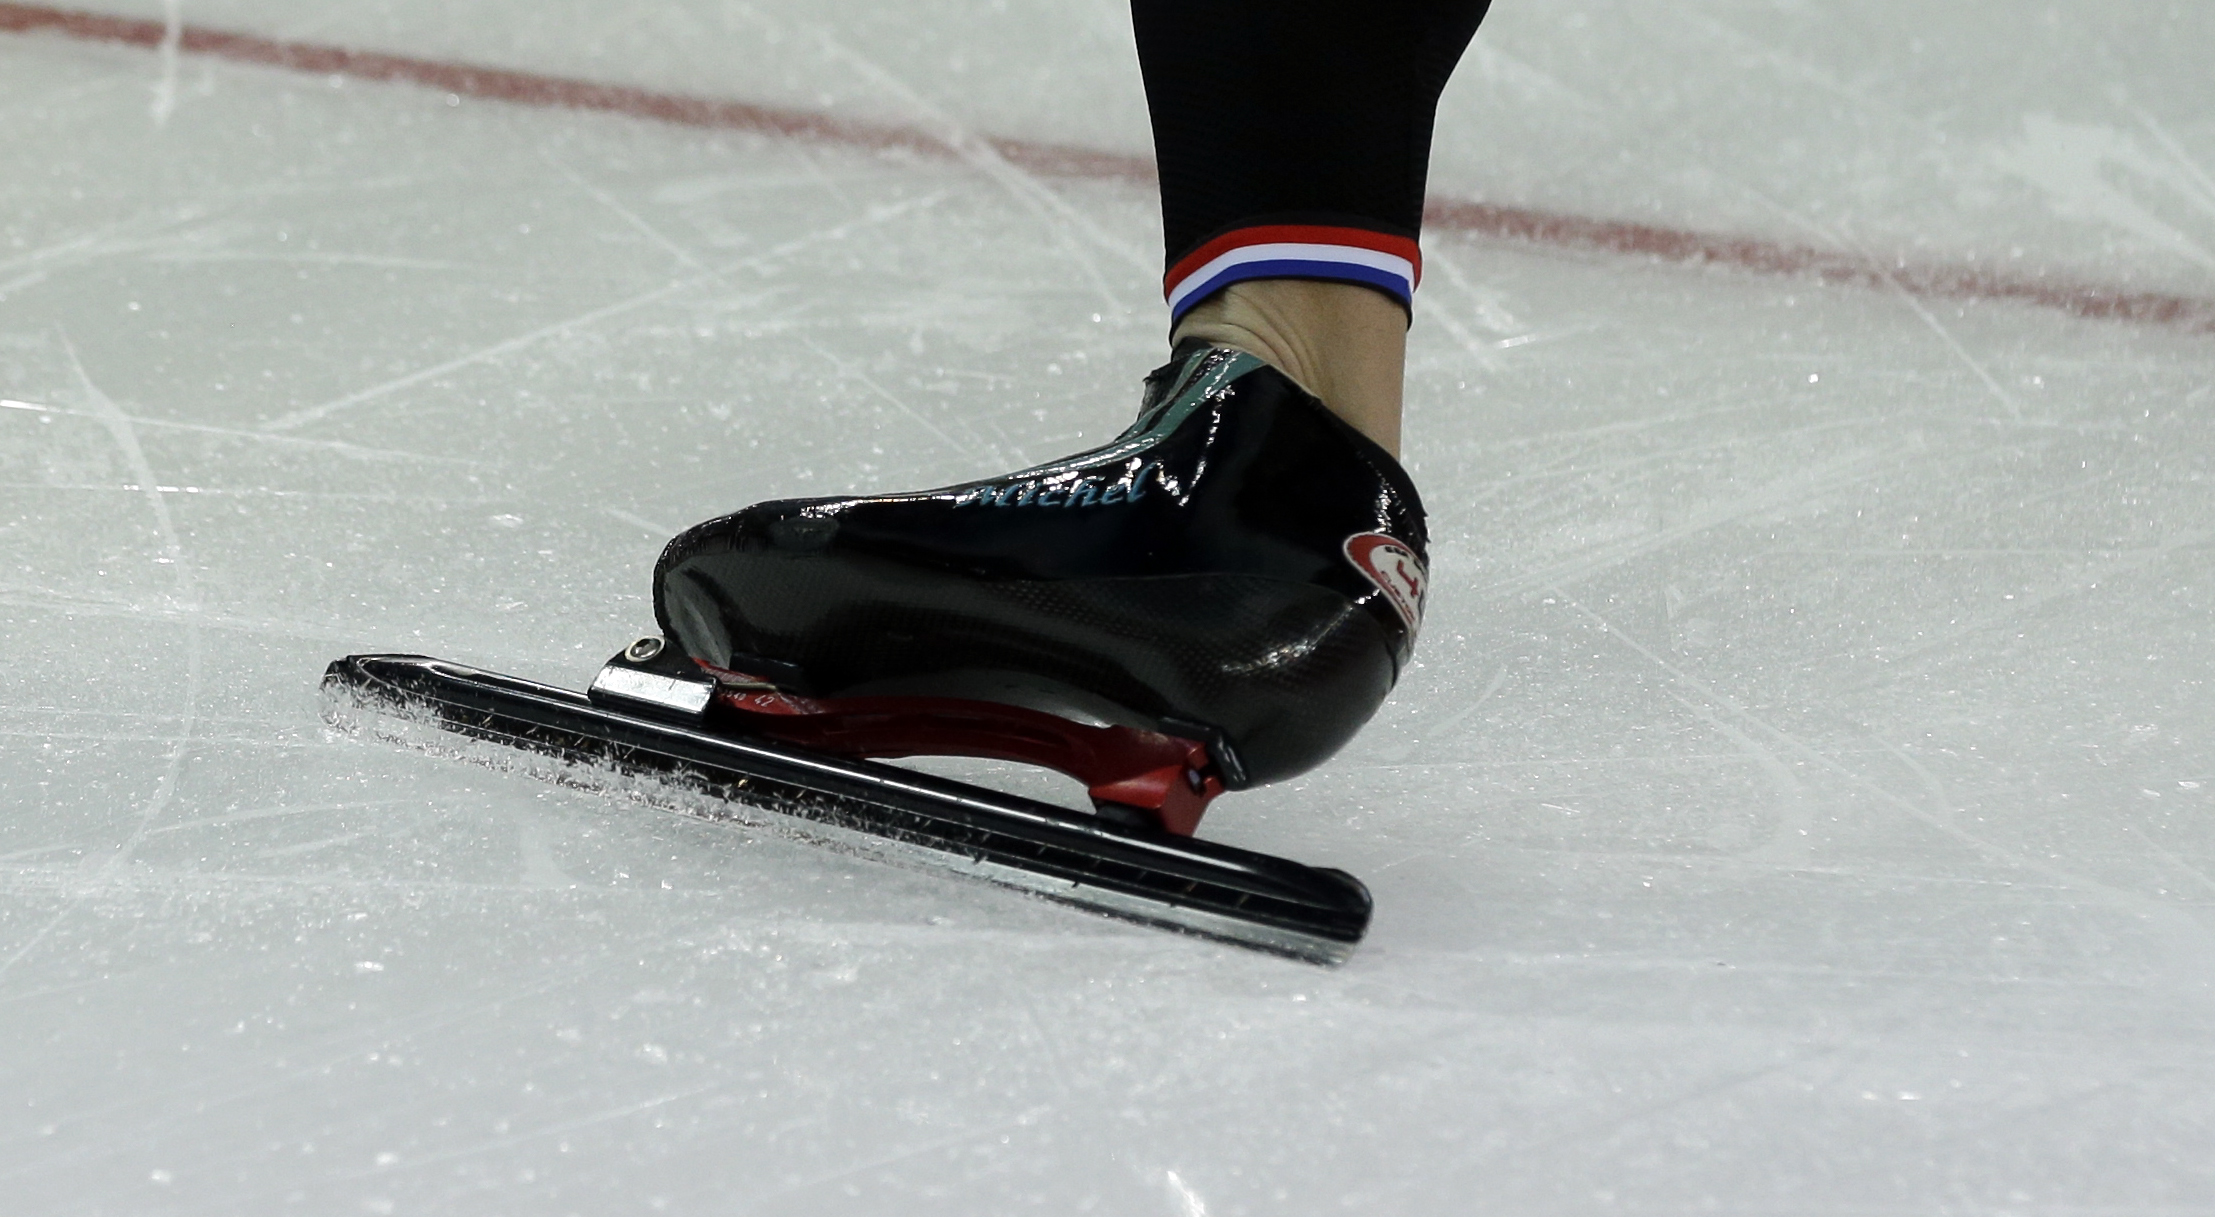 The skate of Michel Mulder of the Netherlands bears his name as he practices his start prior to the start of the men's 500-meter speedskating race at the Adler Arena Skating Center during the 2014 Winter Olympics, Monday, Feb. 10, 2014, in Sochi, Russia. (AP Photo/Patrick Semansky)